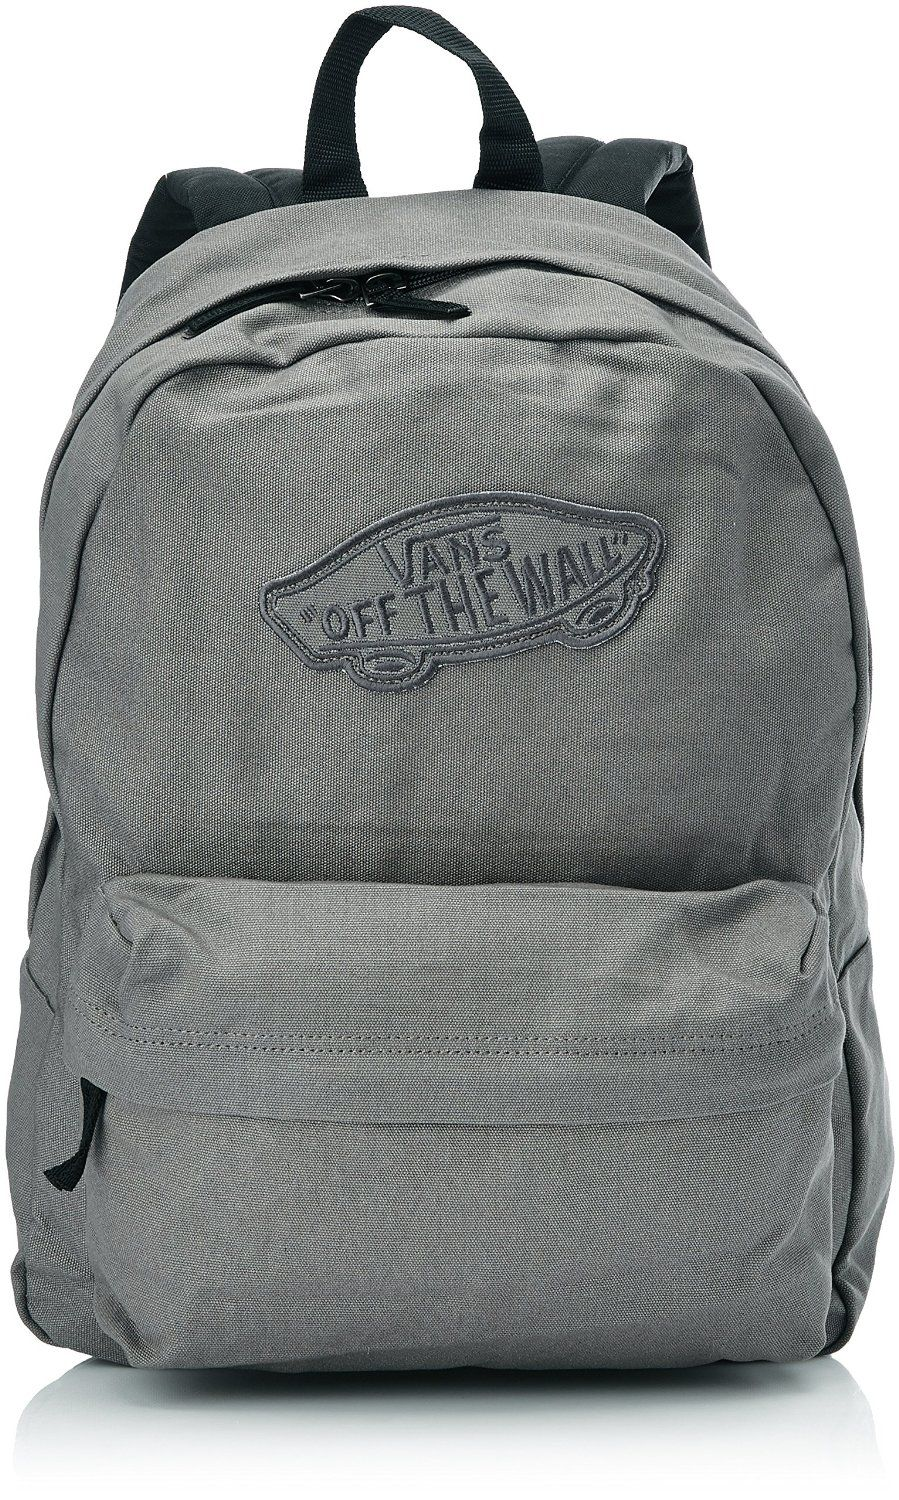 Vans Damen Rucksack G Realm Backpack: Amazon.de: Sport & Freizeit ...